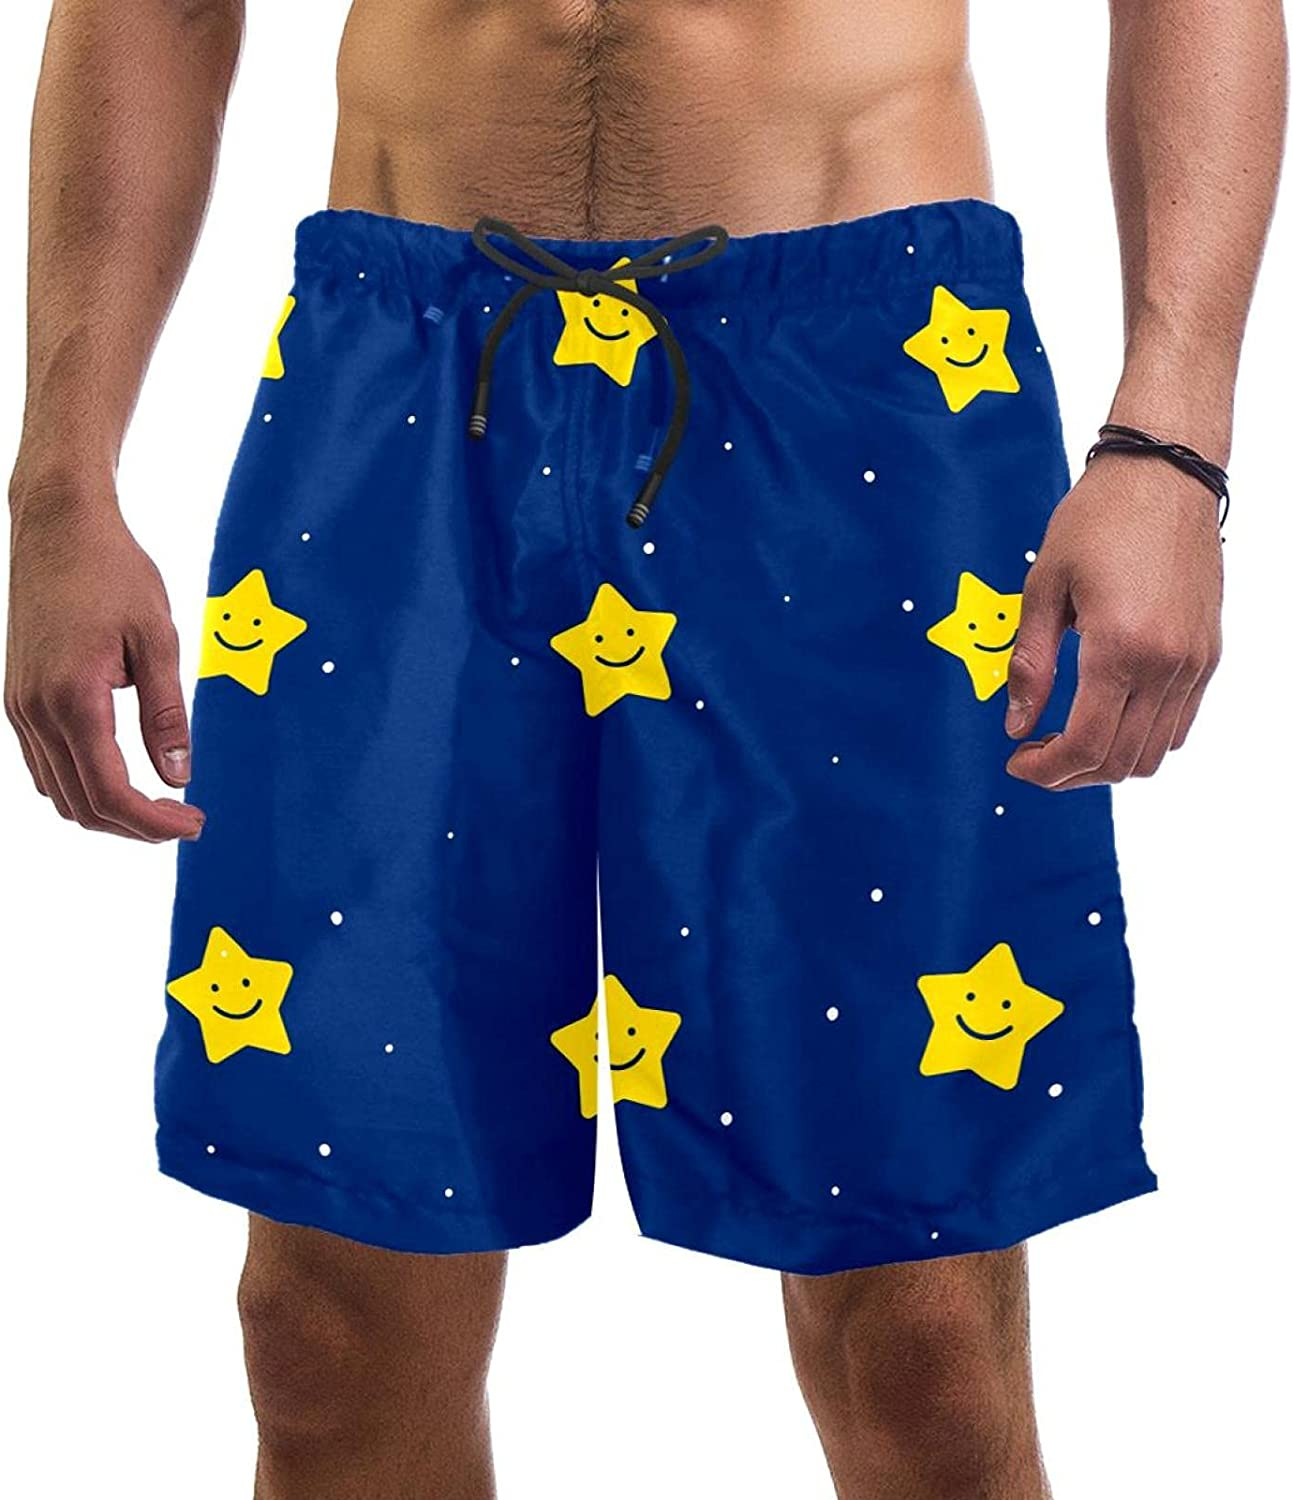 Wanlipous Men's Beach Shorts Cute Star Now on sale Blue Space Same day shipping Background Qui